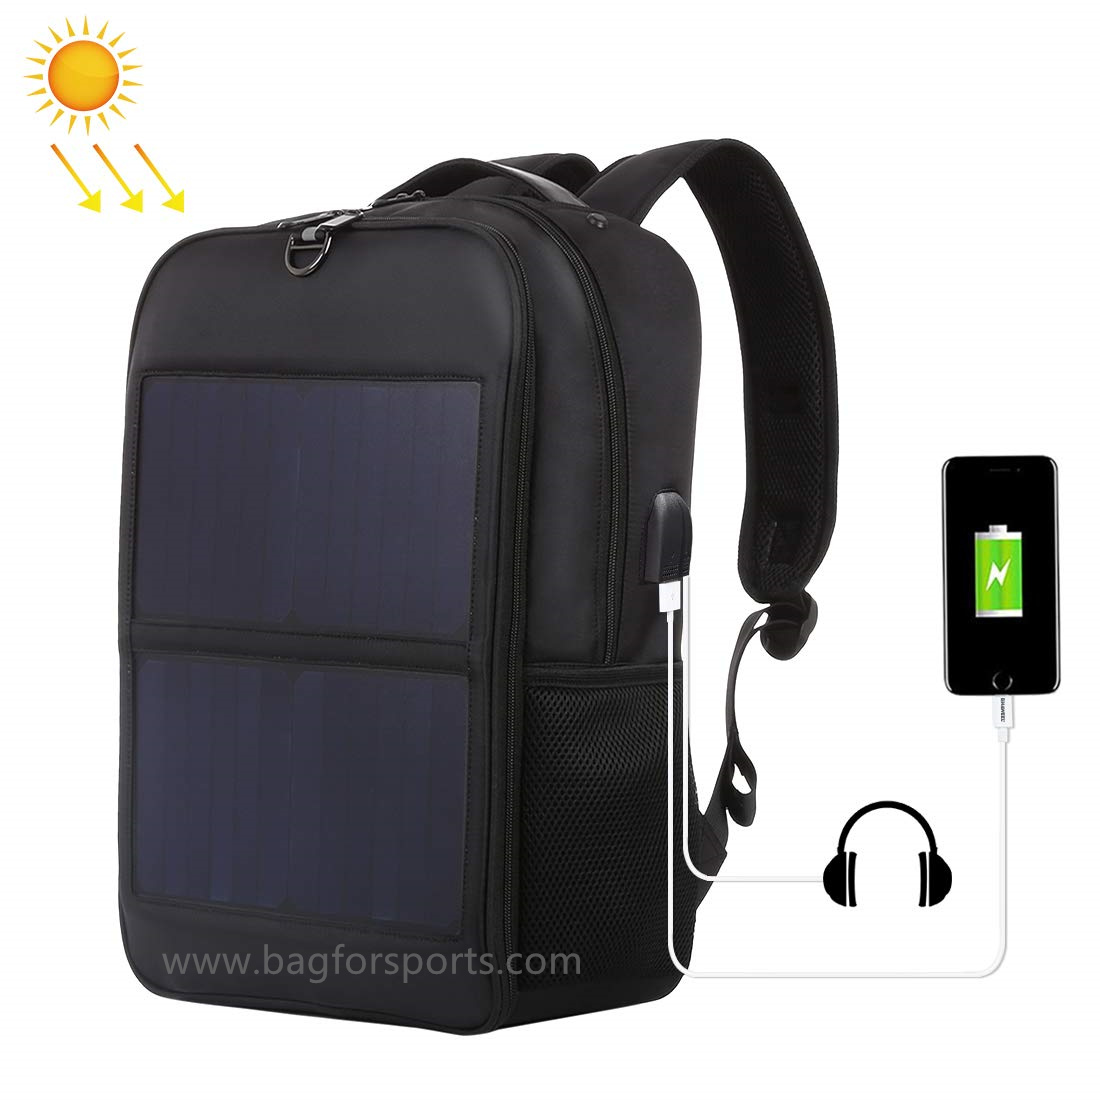 14W Solar Backpack, Solar Panel Powered Backpack Water Resistant Laptop Bag with USB Charging Port S